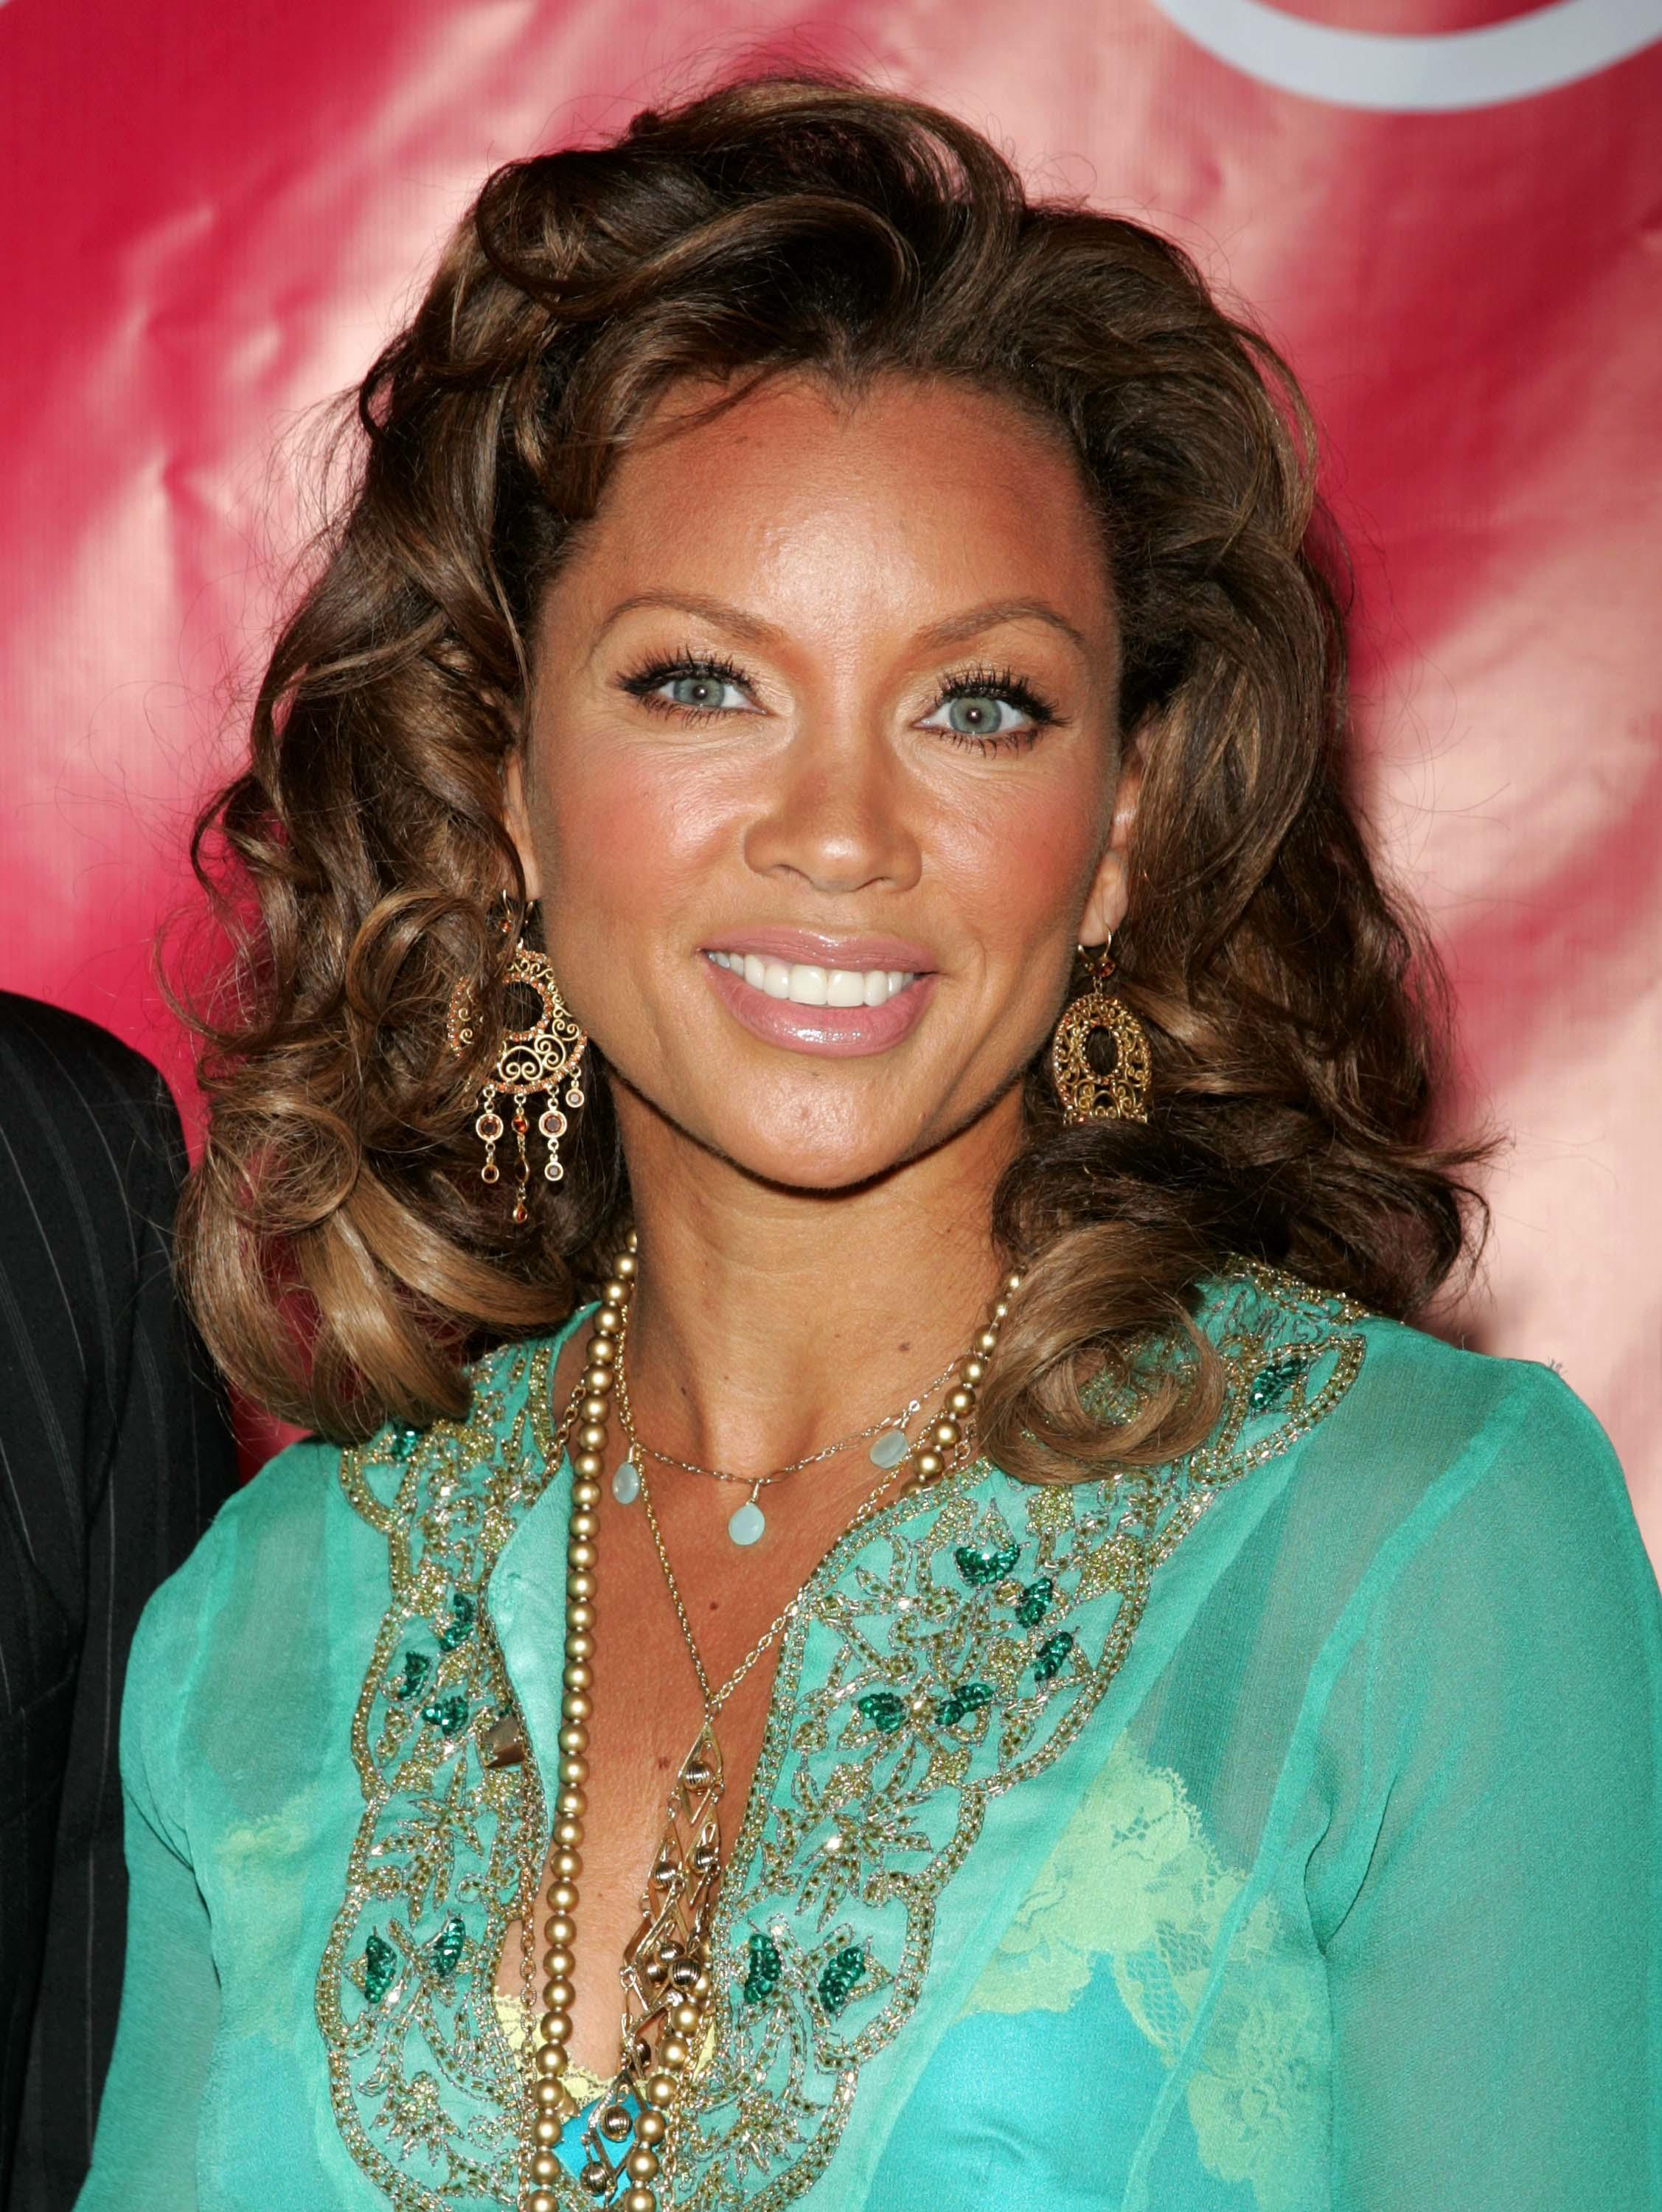 Vanessa Williams Returns To Miss America Pageant After